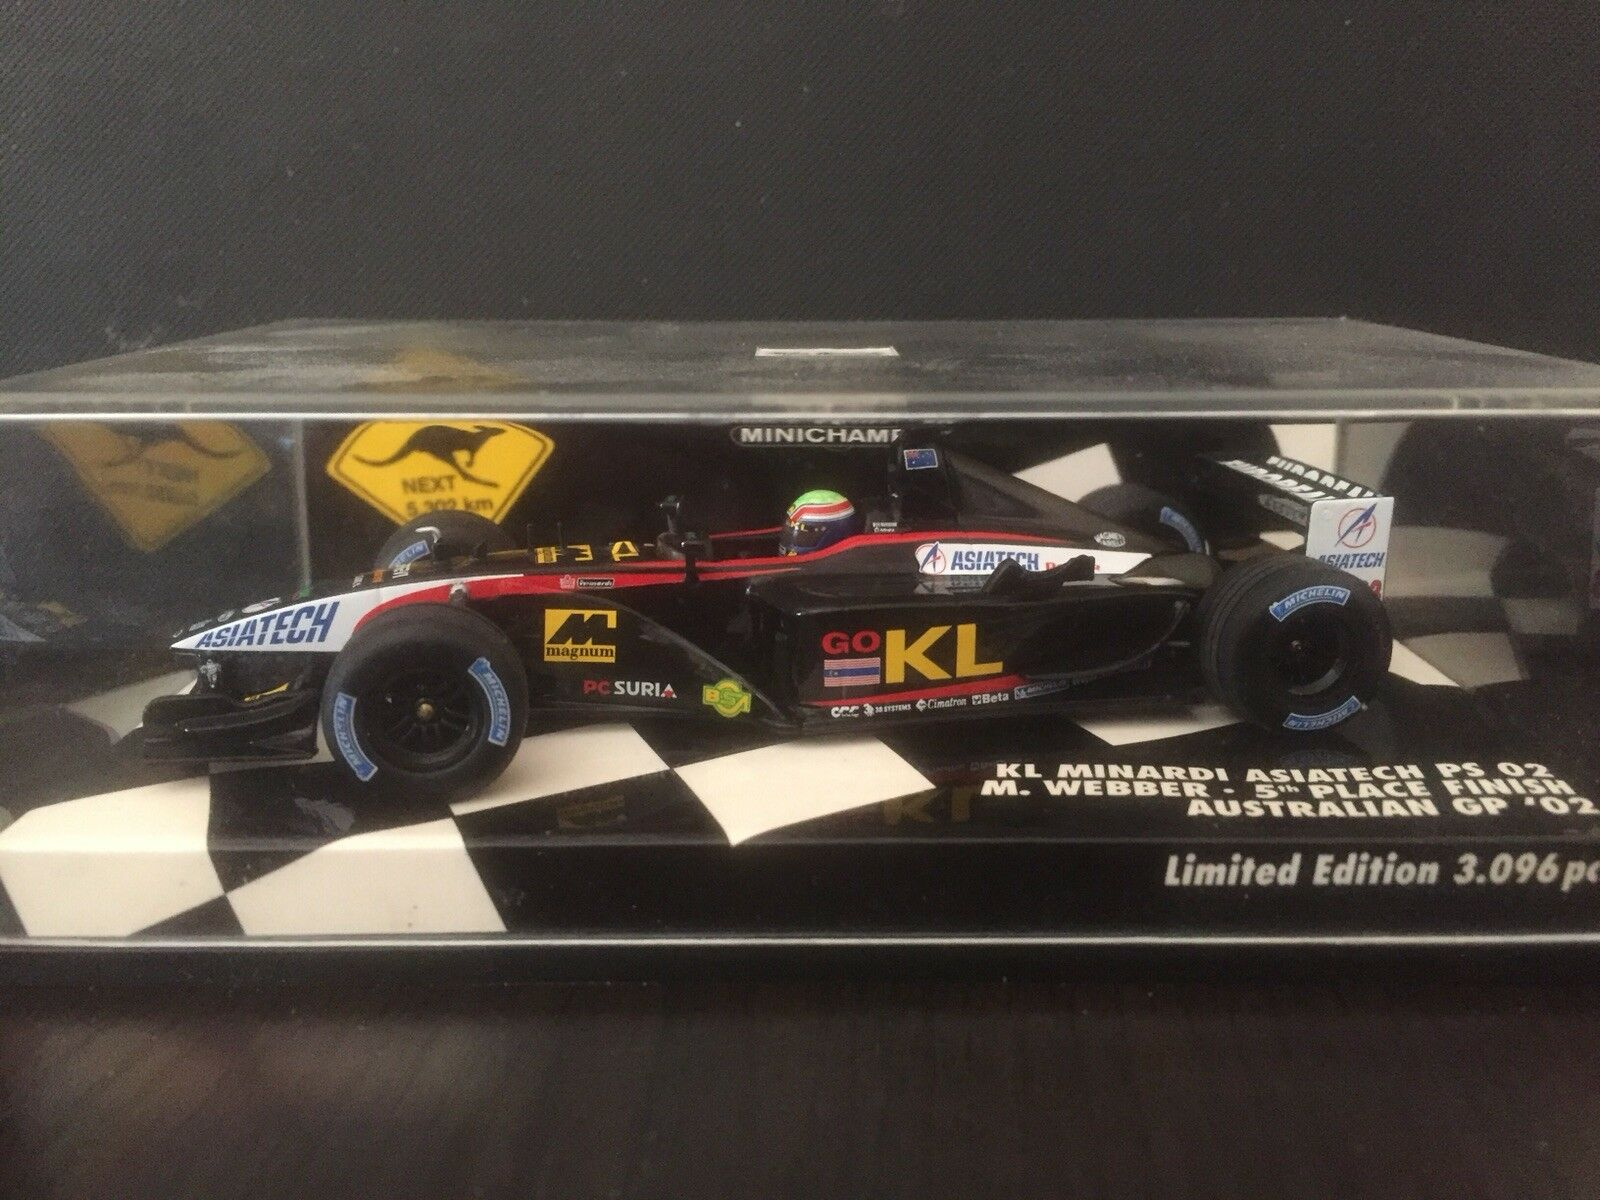 Mark webber Minichamps 1 43 Collection